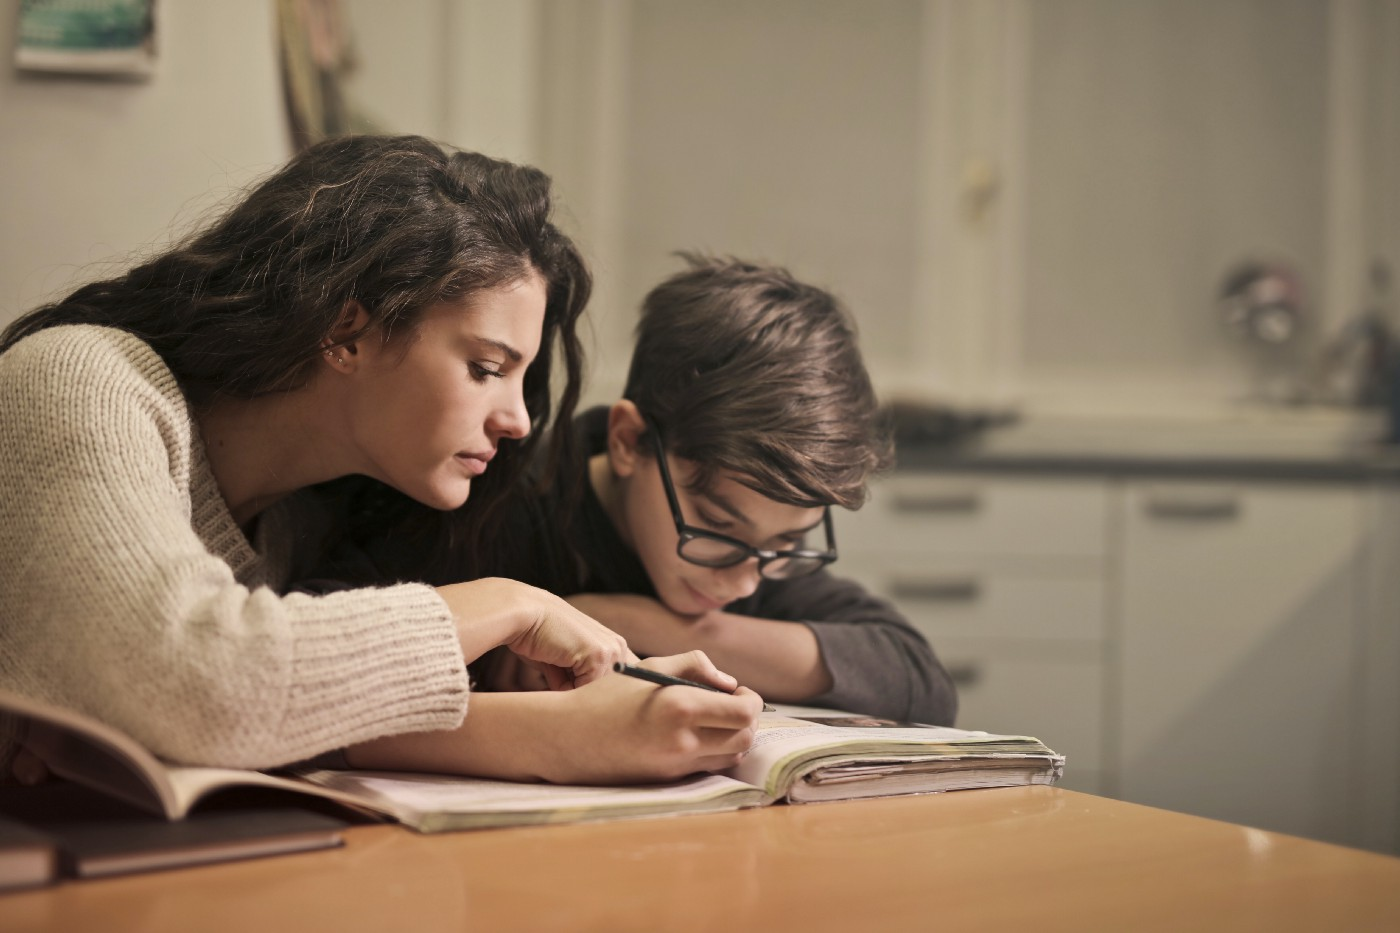 Mom leaning over and helping son who is writing in a book at their kitchen table.